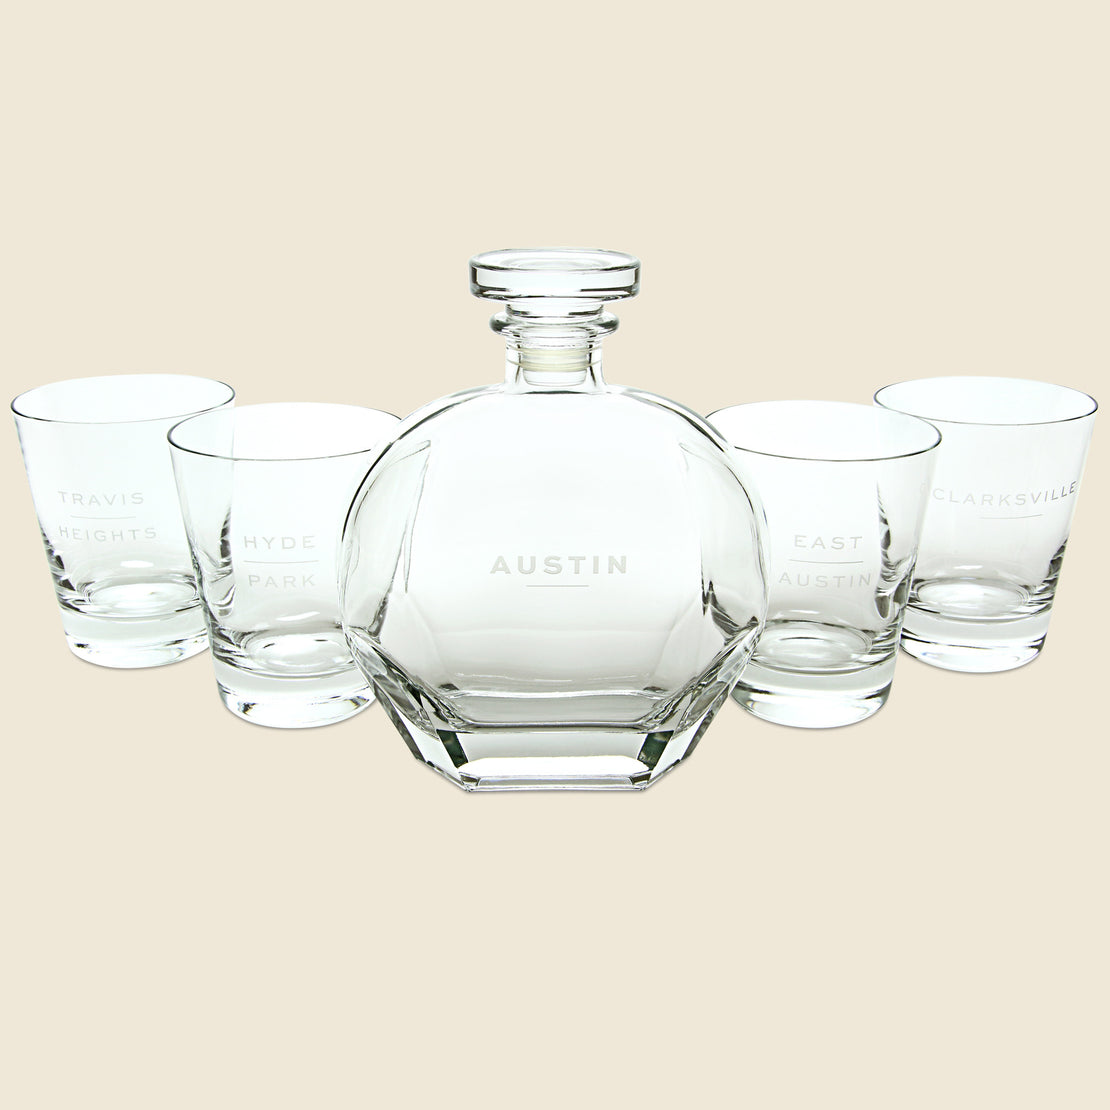 Barware Decanter & Tumbler Set - Austin Neighborhoods